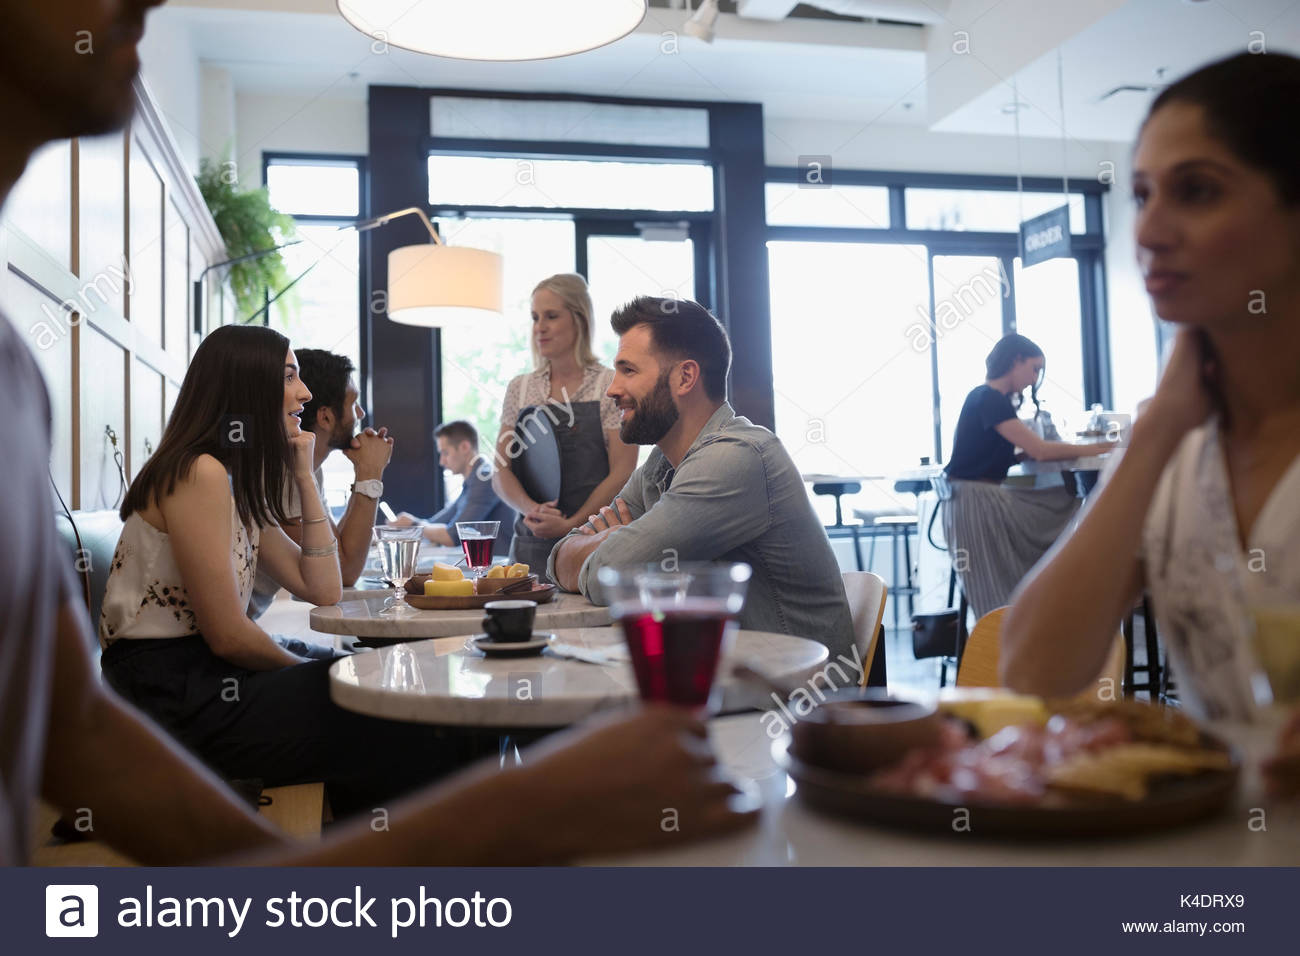 Customers eating and drinking wine at cafe tables Stock Photo